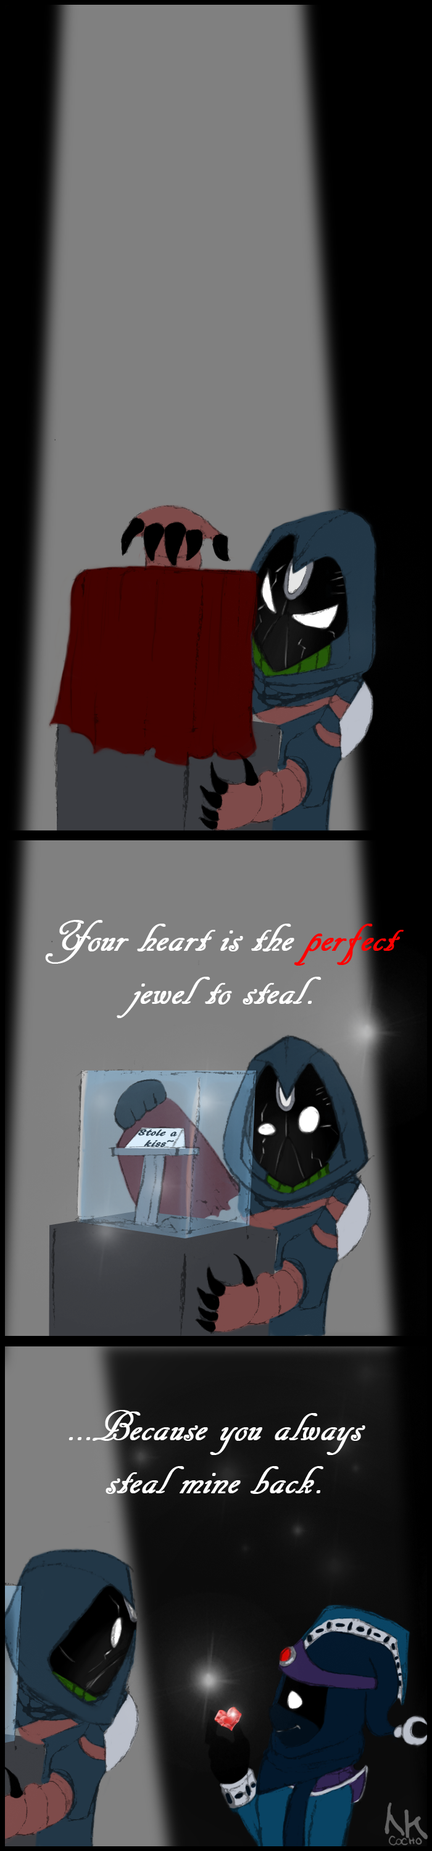 Thieving Valentine by Cocho